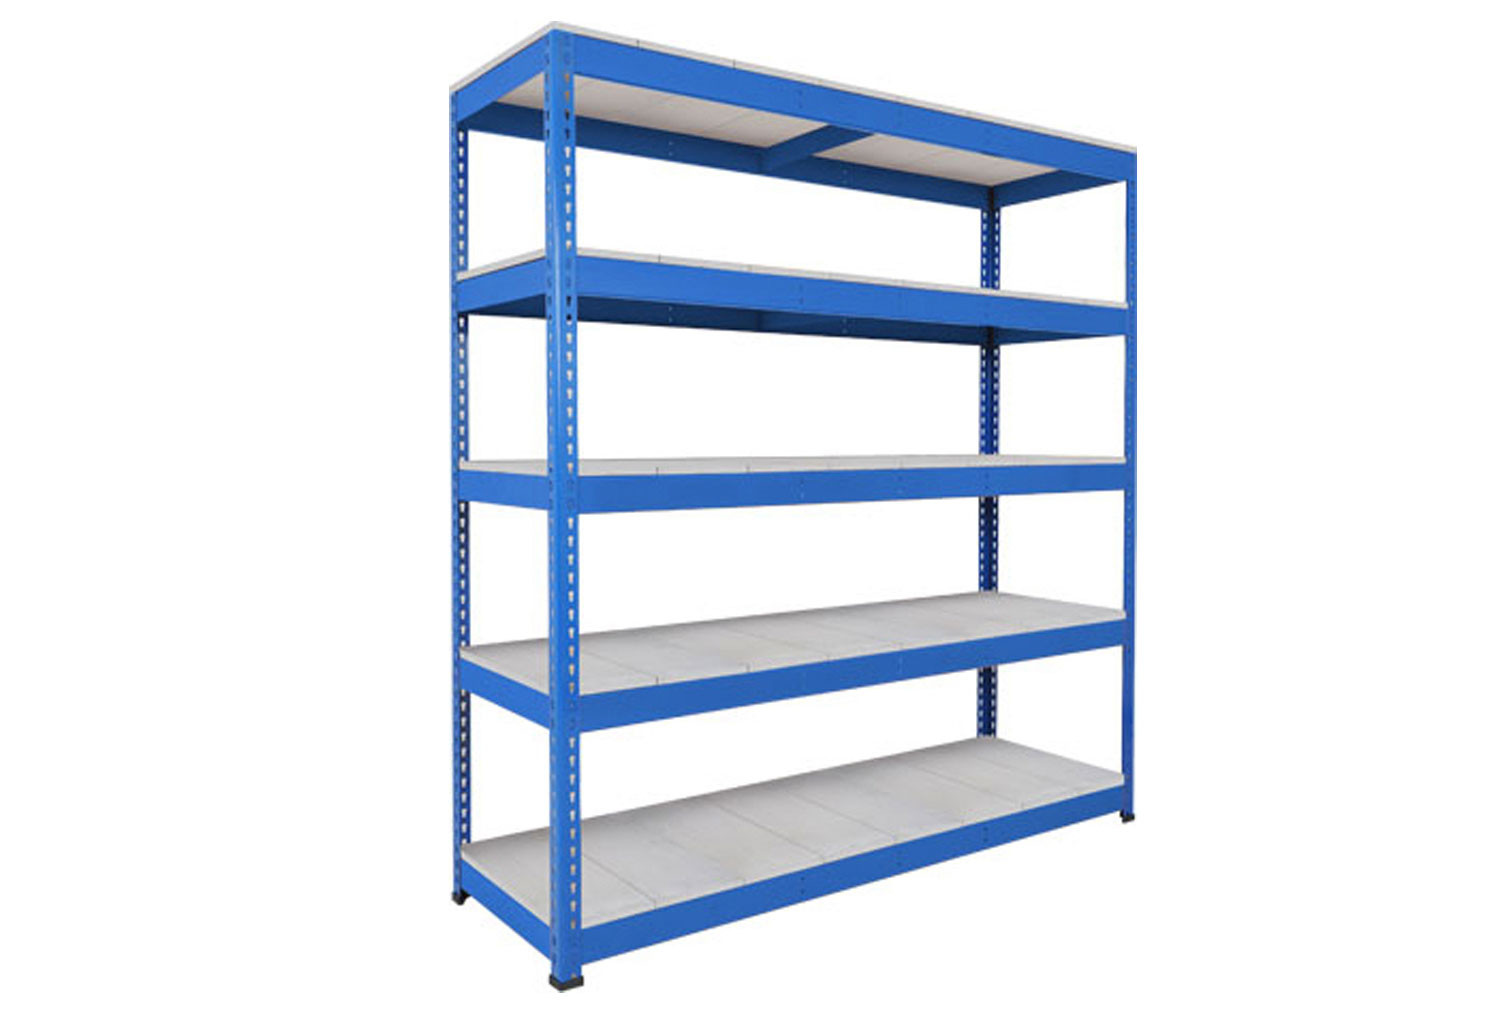 Rapid 1 Heavy Duty Shelving With 5 Galvanized Shelves 1830wx1980h (Blue)